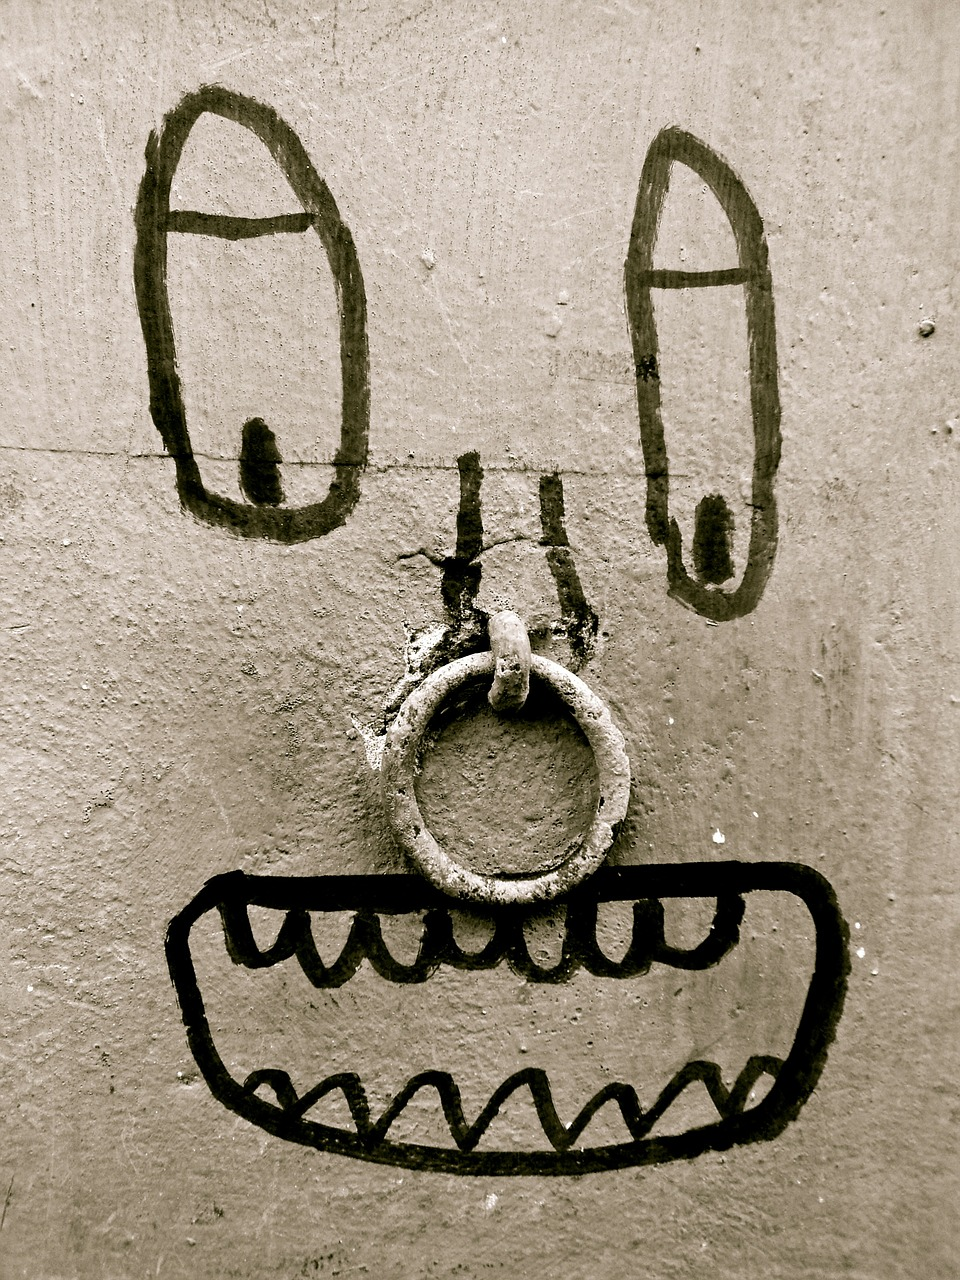 fun art graffiti free photo